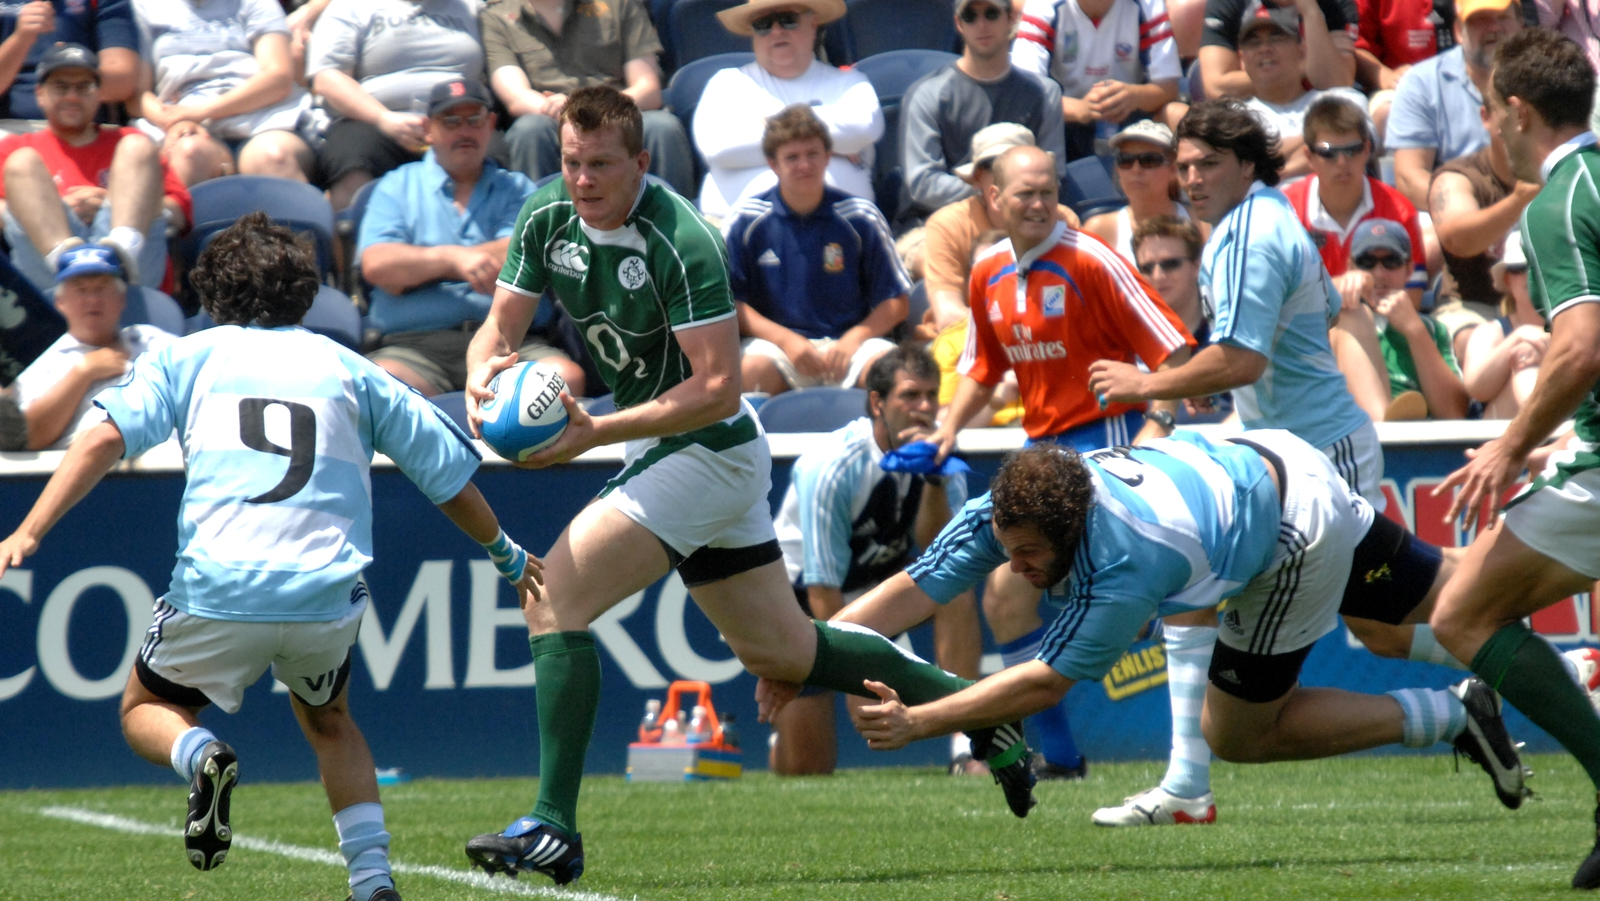 Image - Denis Hurley in action for Ireland A against Argentina A in the 2008 Churchill Cup